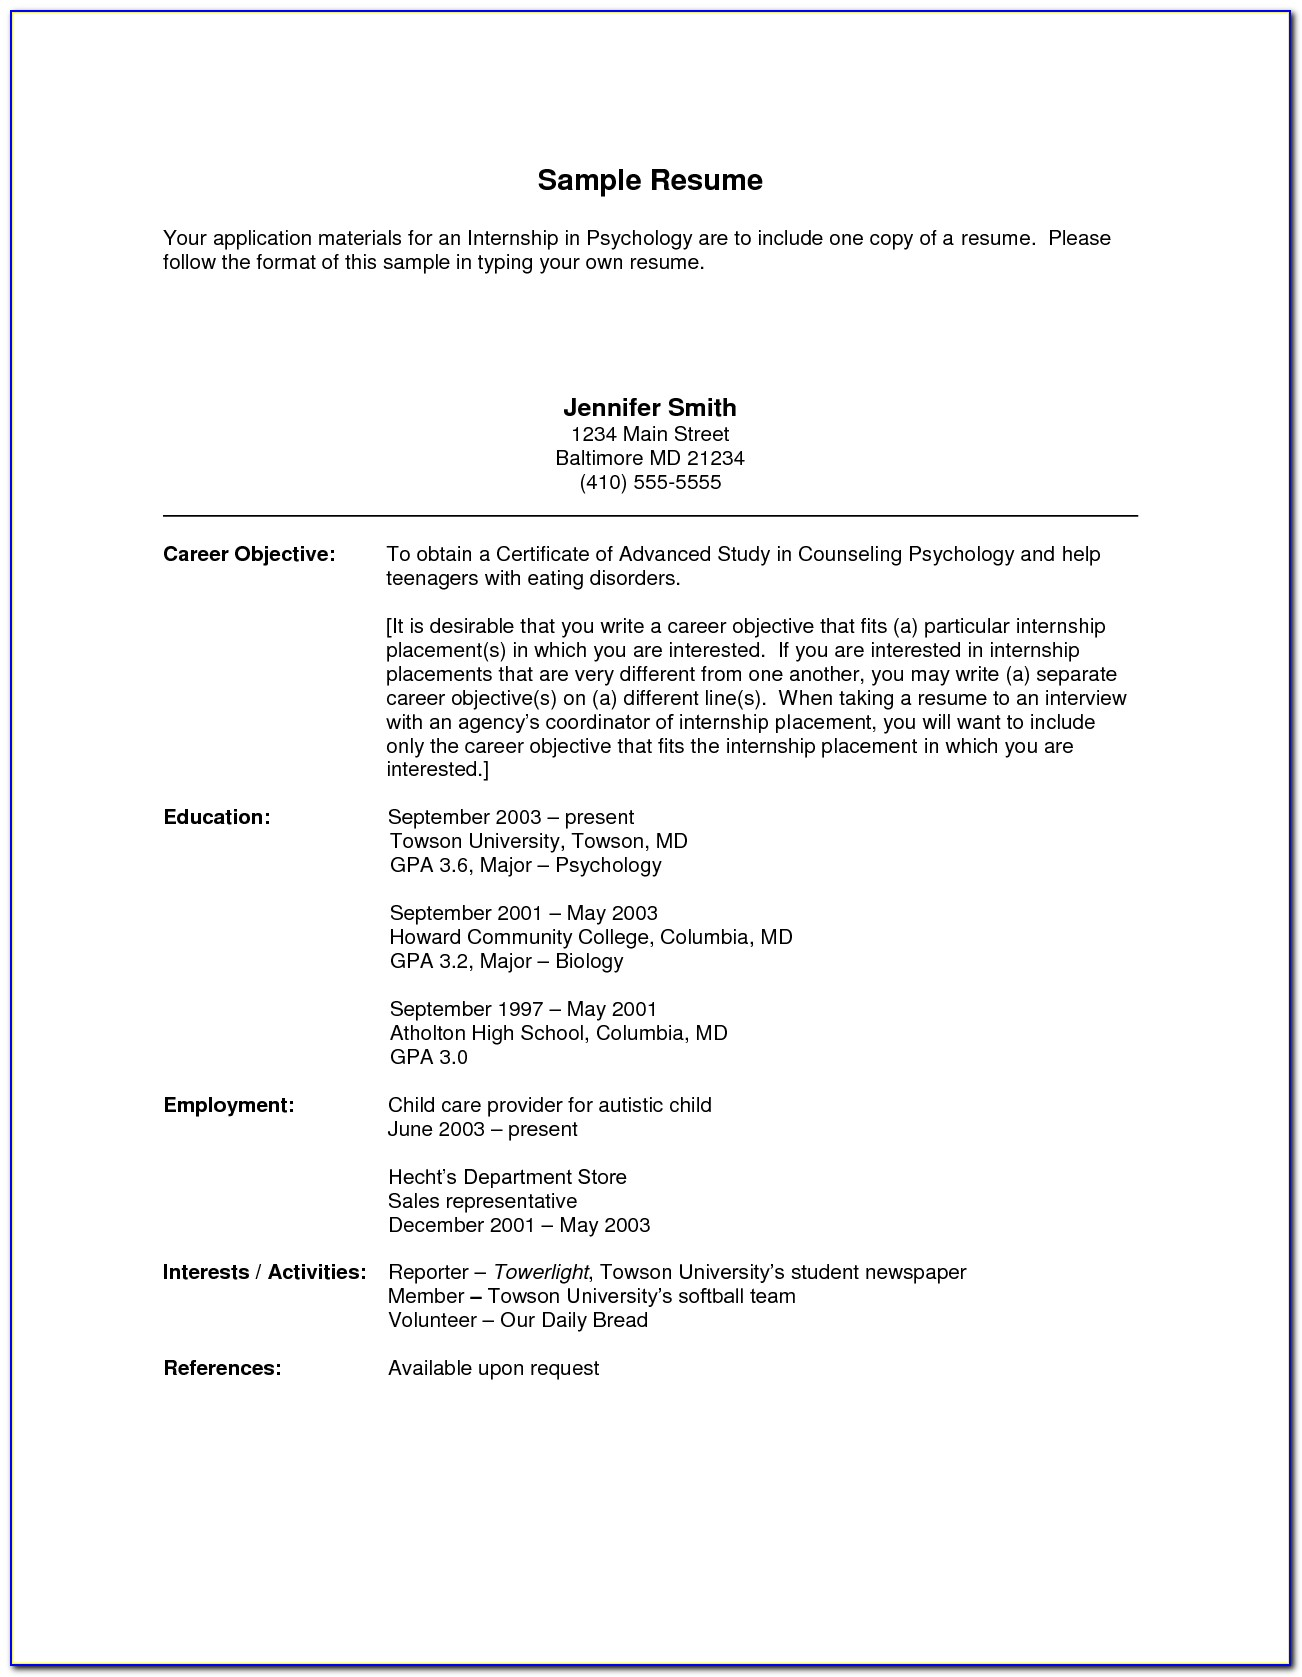 a good resume for a highschool student